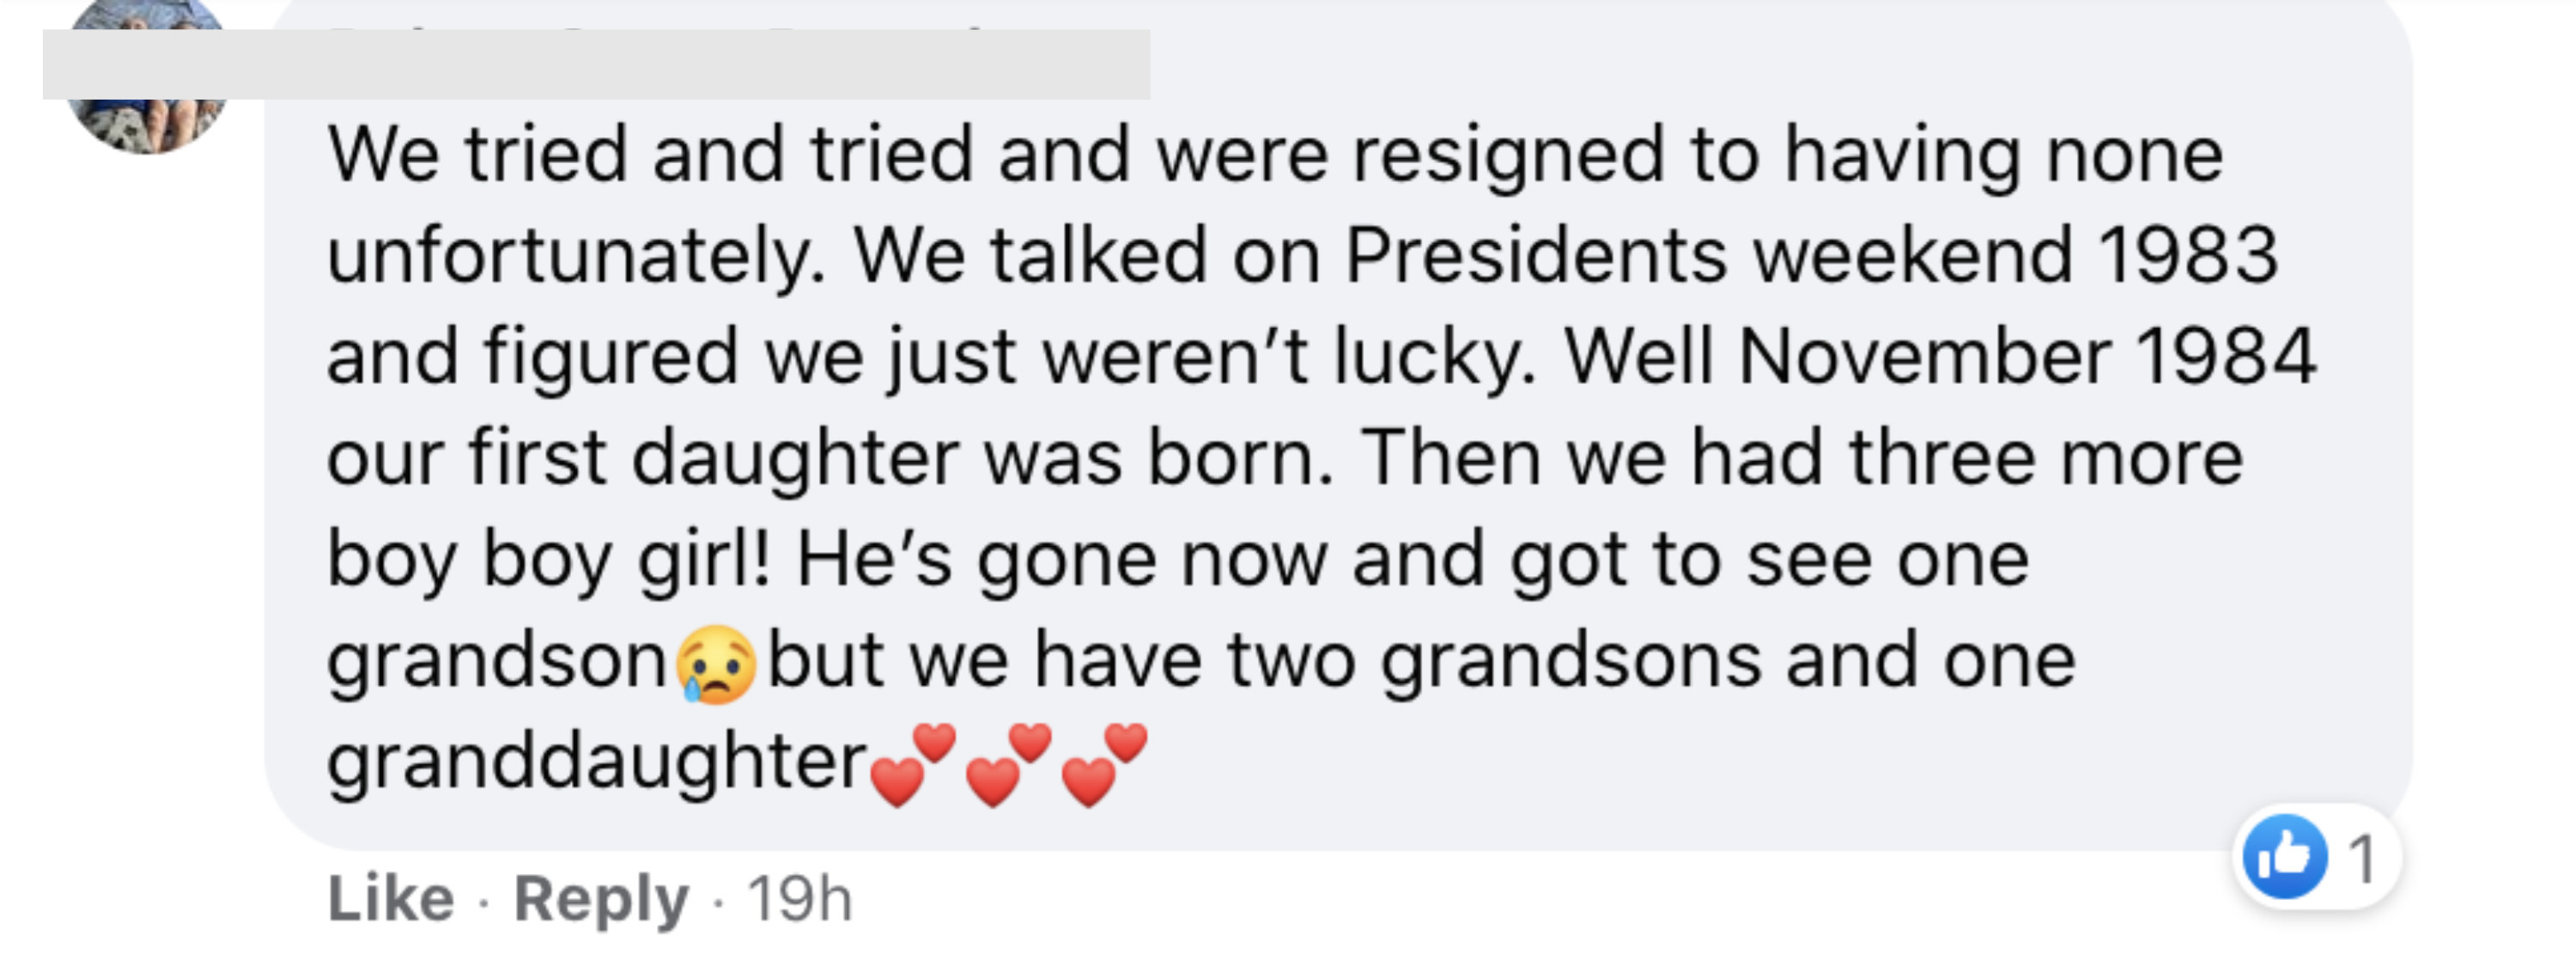 We tried and tried and were resigned to having none unfortunately We talked on President's weekend 1983 and figured we just weren't lucky Well November 1984 our first daughter was born Then we had three more